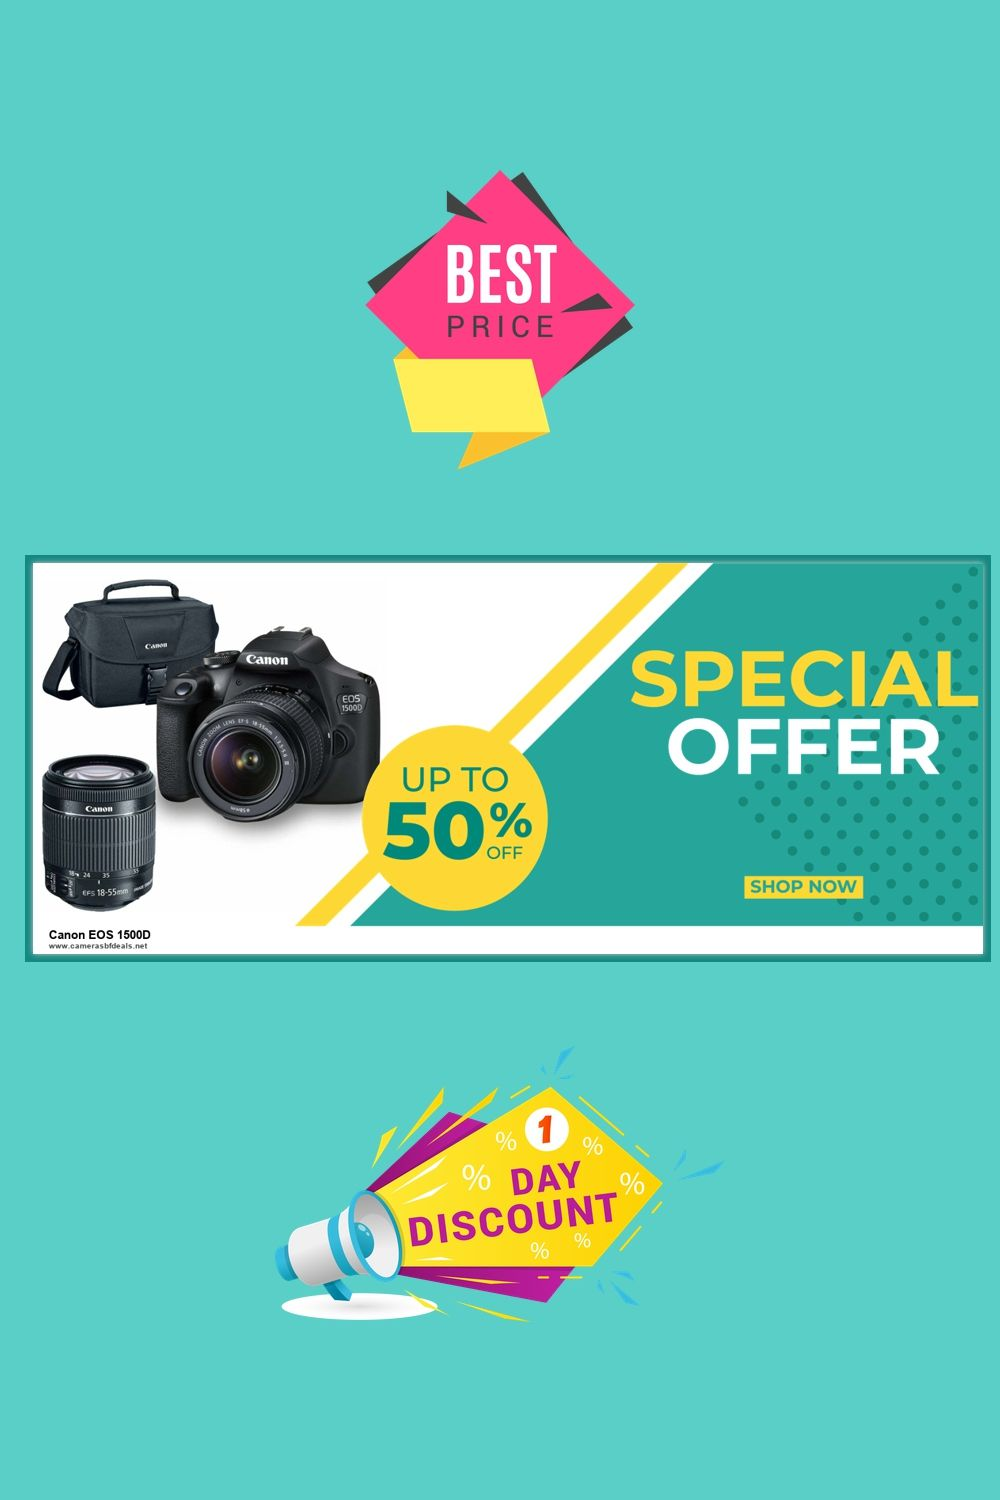 Top 5 Canon Eos 1500d Black Friday Sales Deals 2020 In 2020 Canon Eos Eos Black Friday